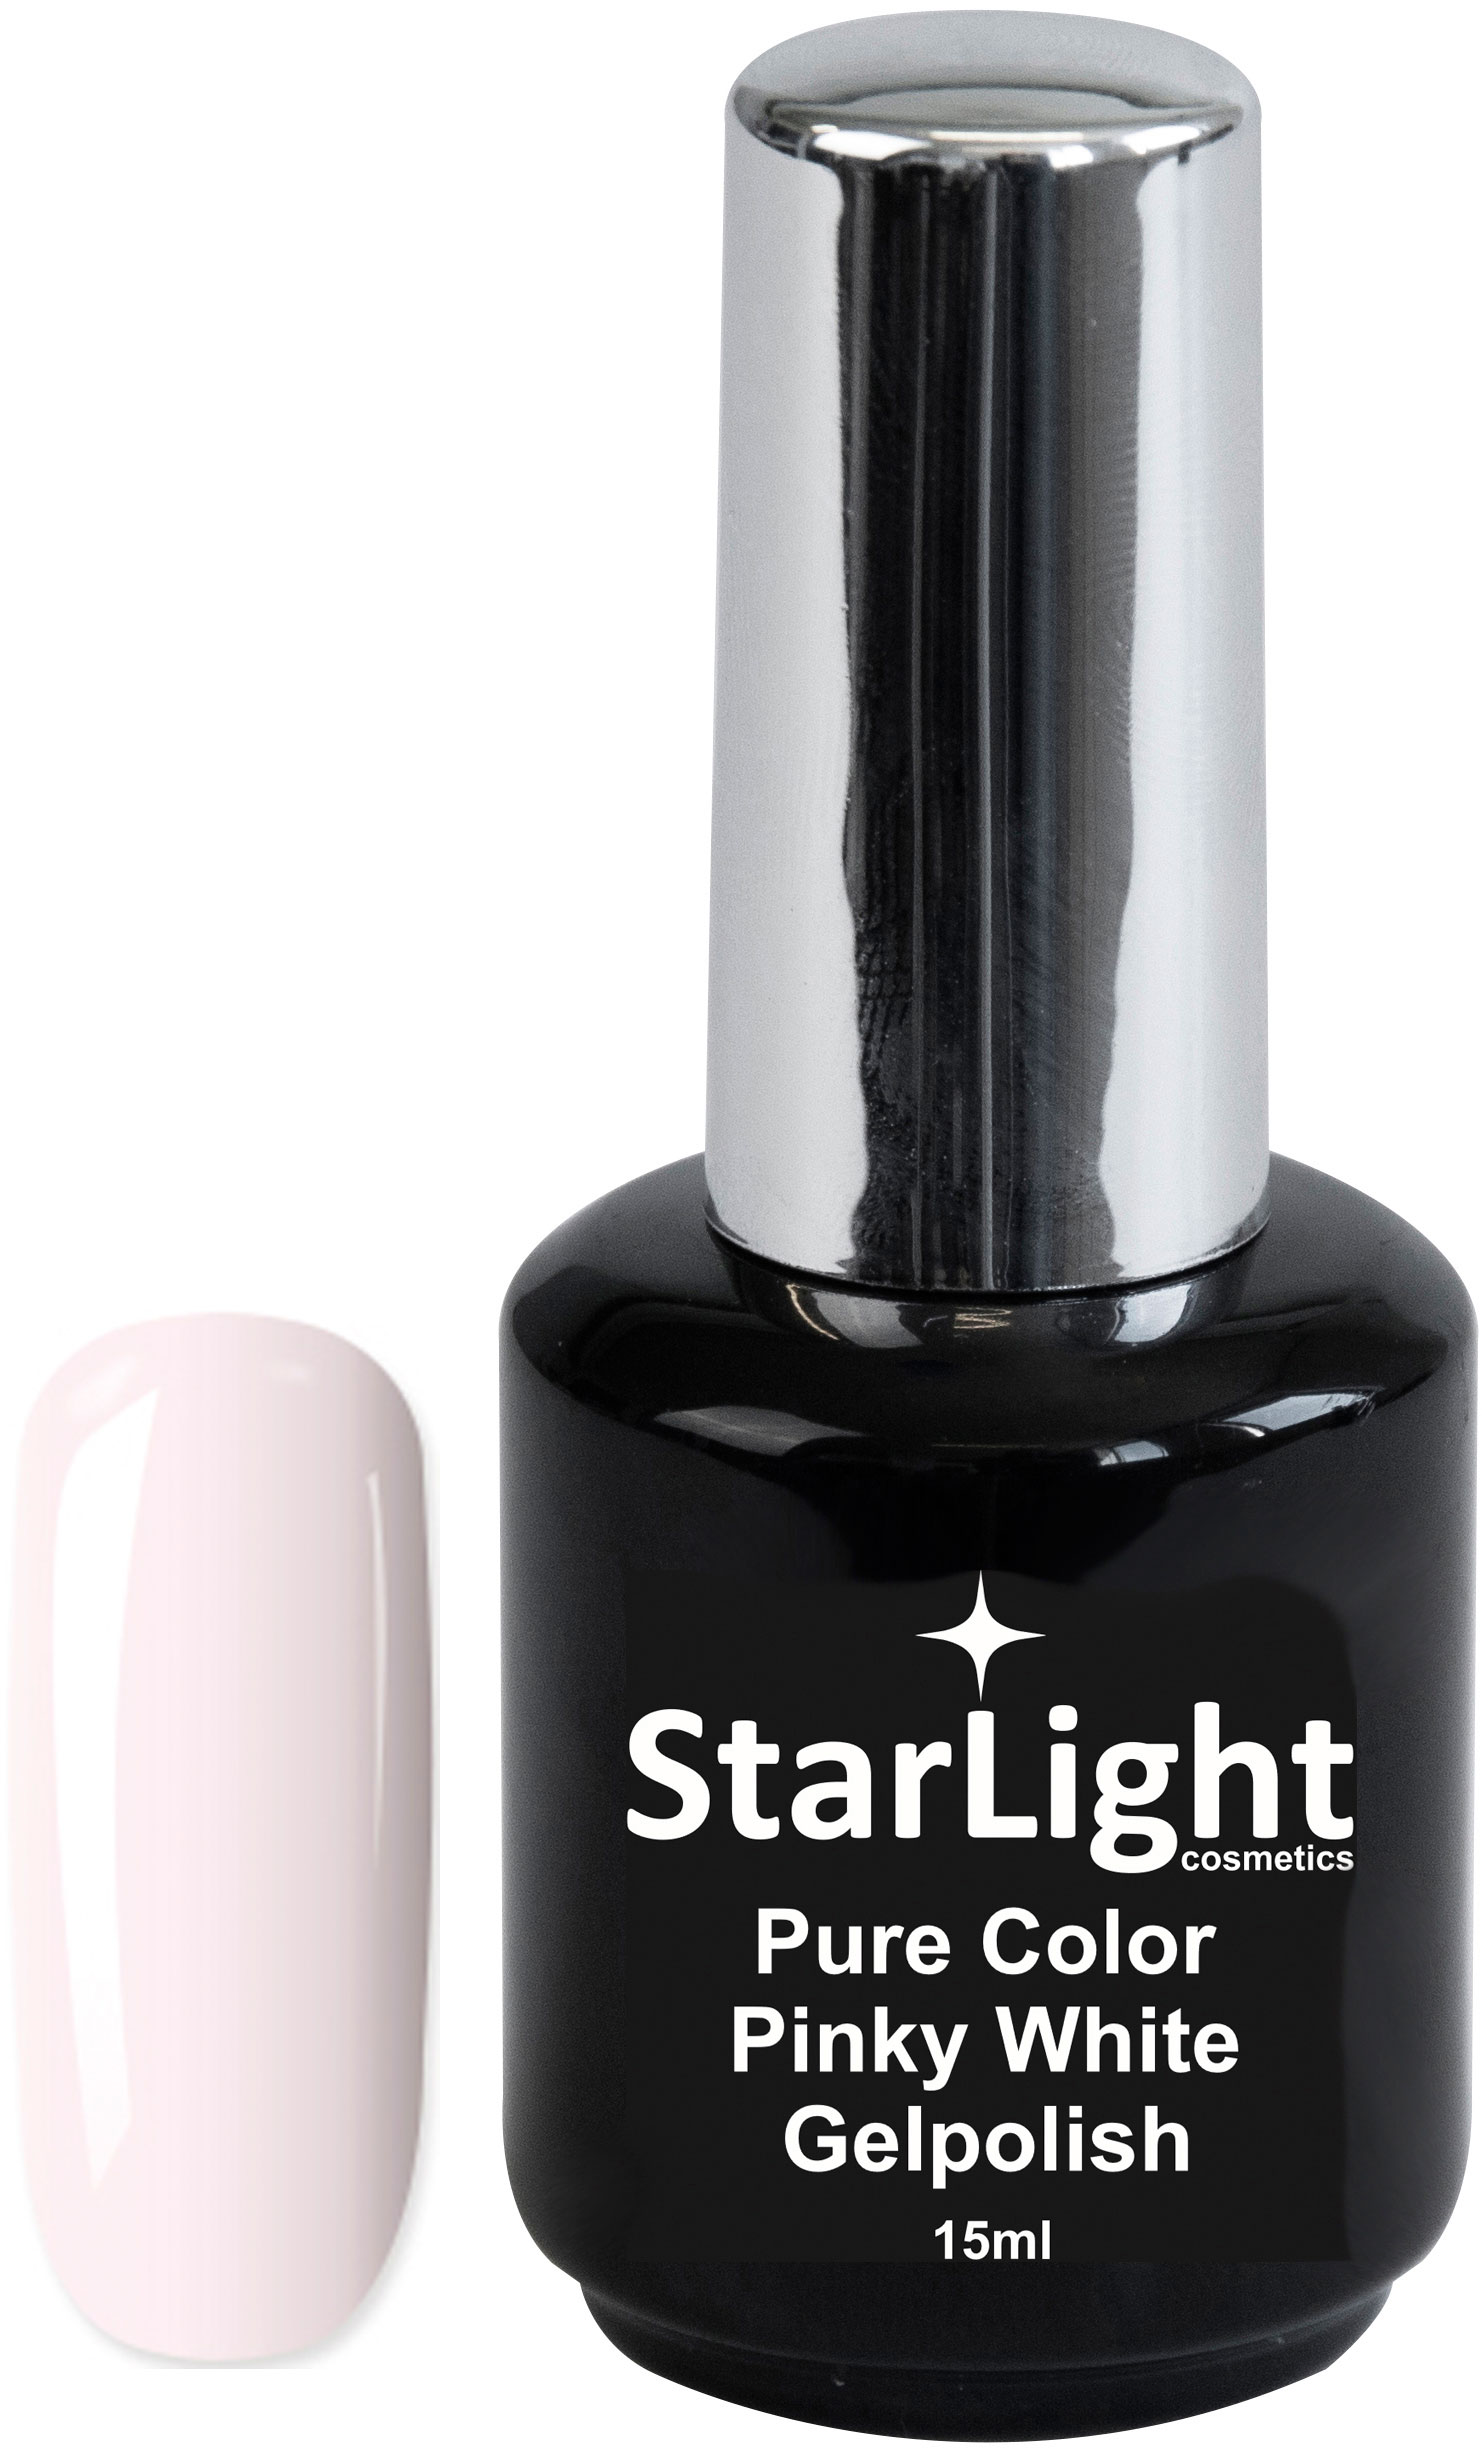 Naglar Gelpolish Pure Color Pinky White - 15 ml